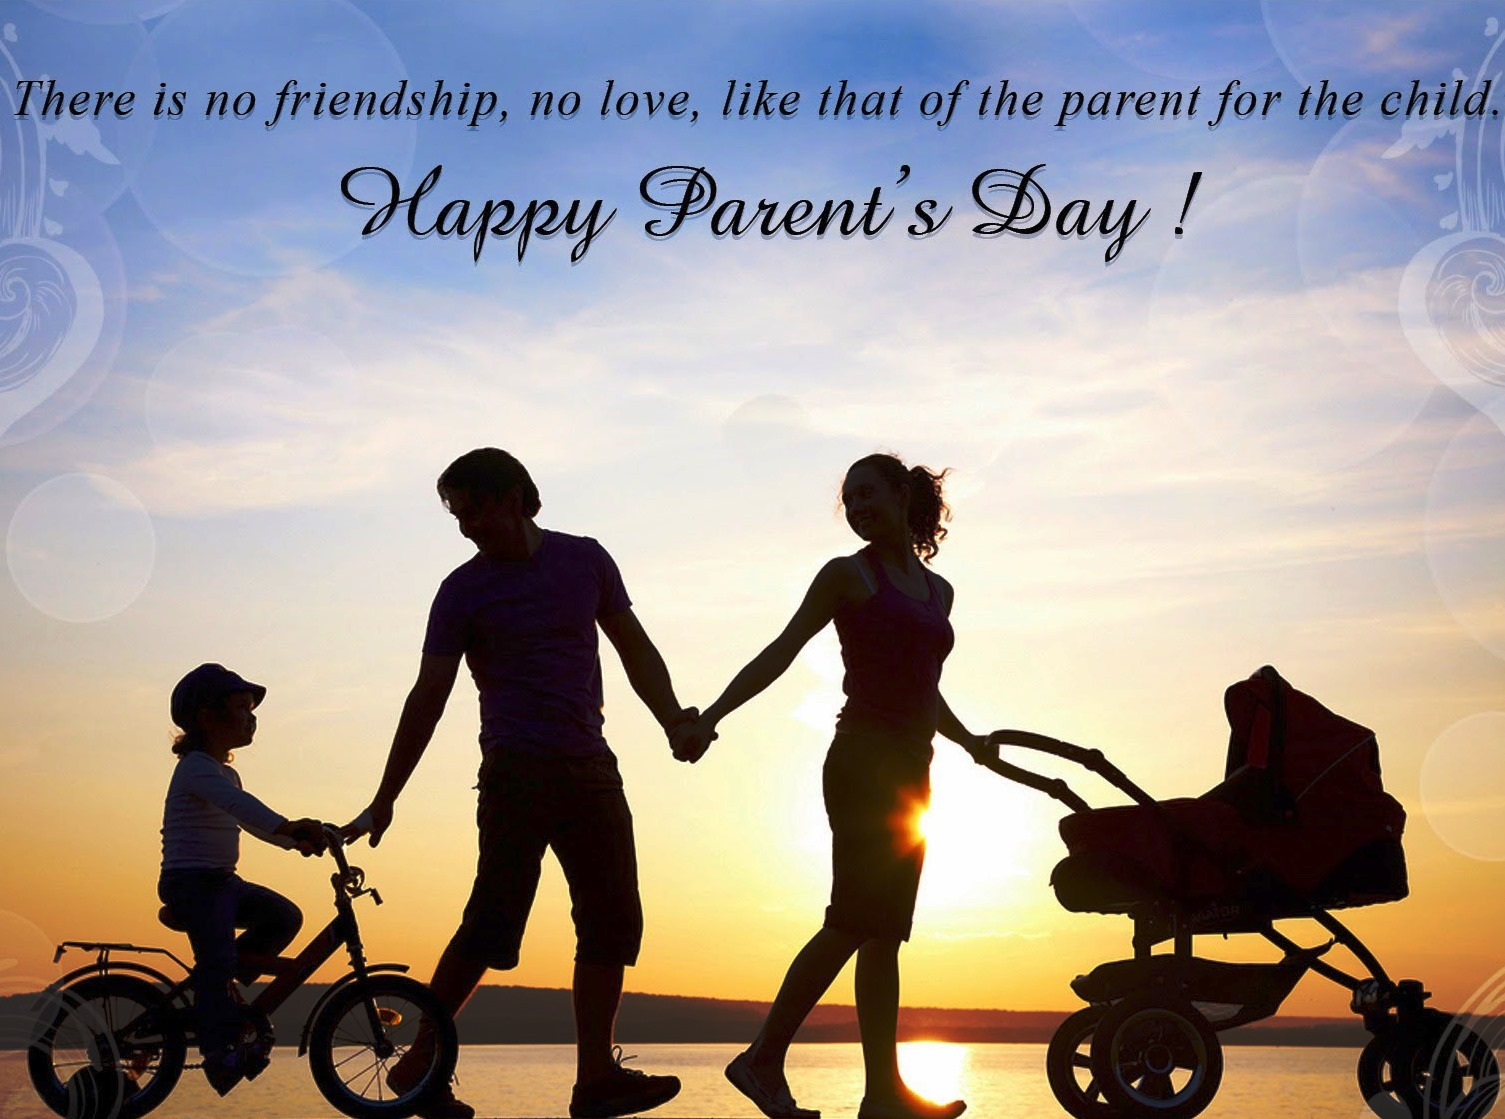 Parents Day Sms Messages And Status For Facebook Whatsapp 2016